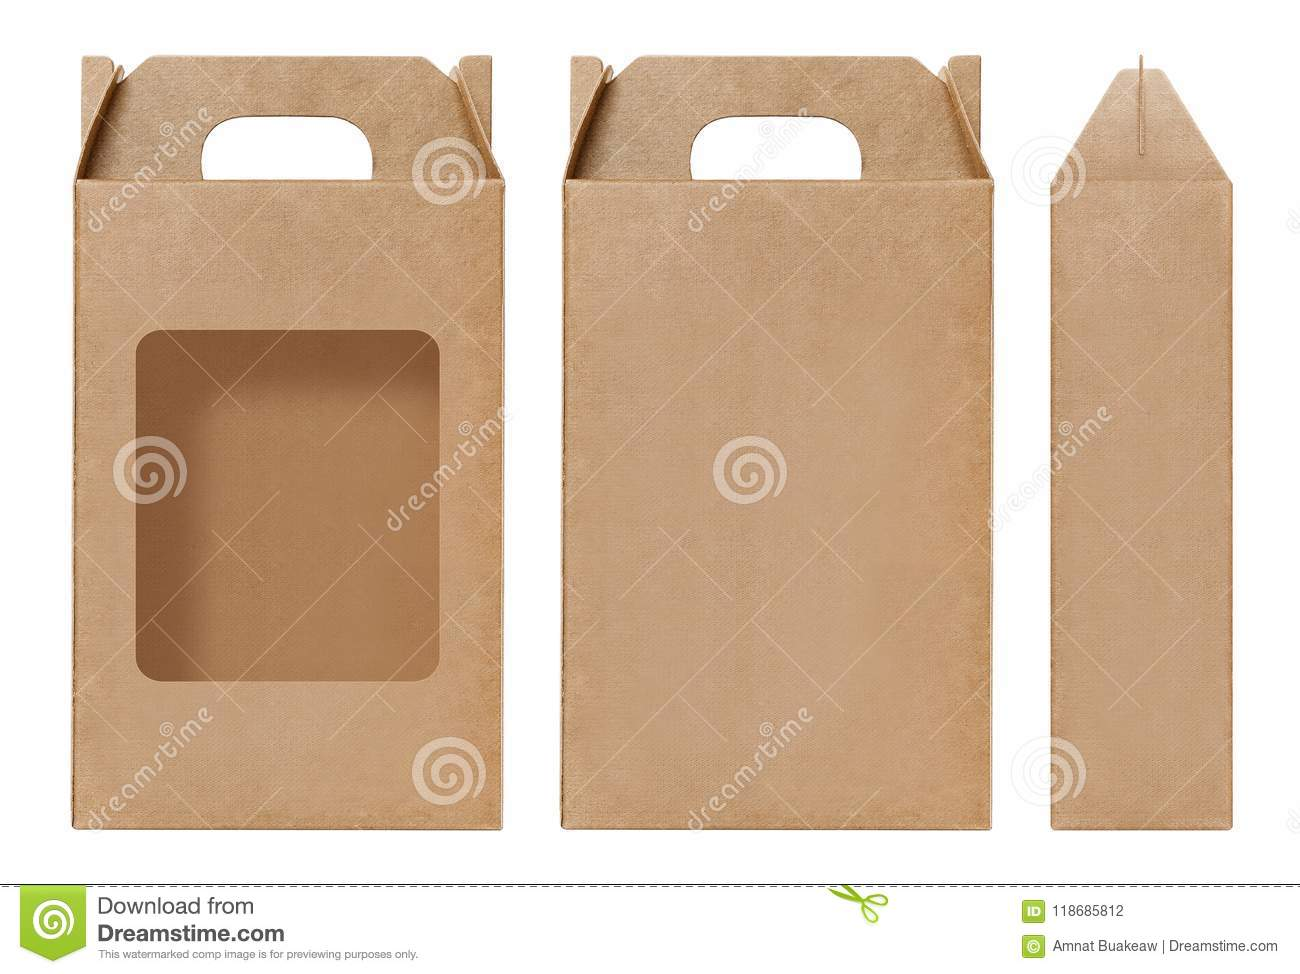 Box brown window shape cut out Packaging template, Empty kraft Box Cardboard isolated white background, Boxes Paper kraft natural